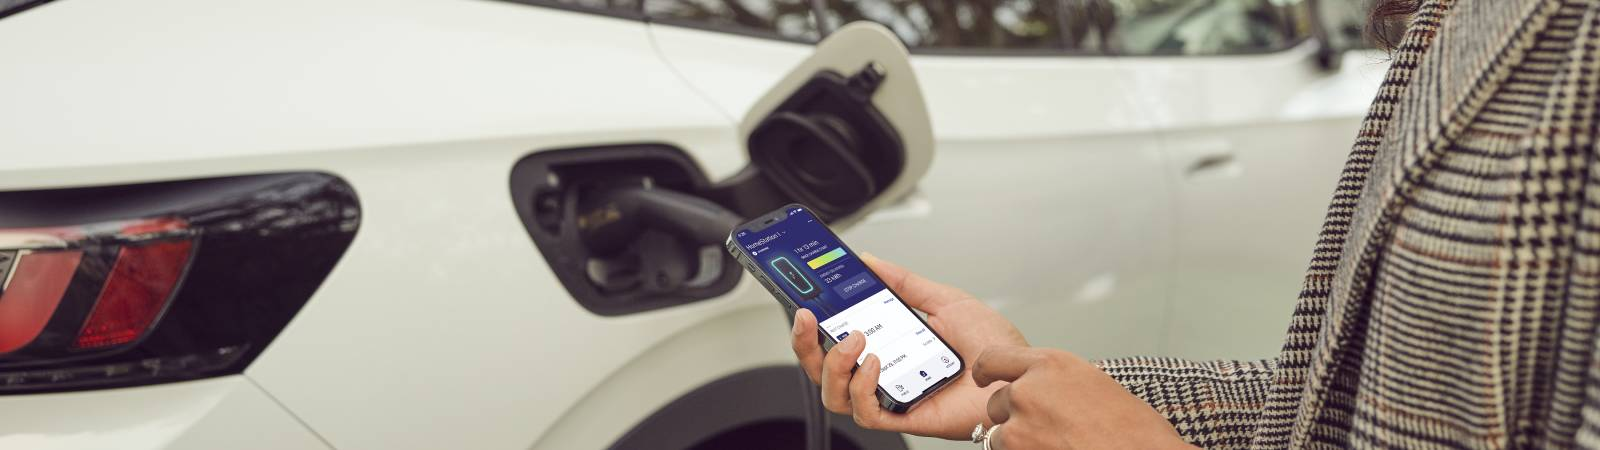 HomeStation features the Electrify America app for managing your charger remotely at home